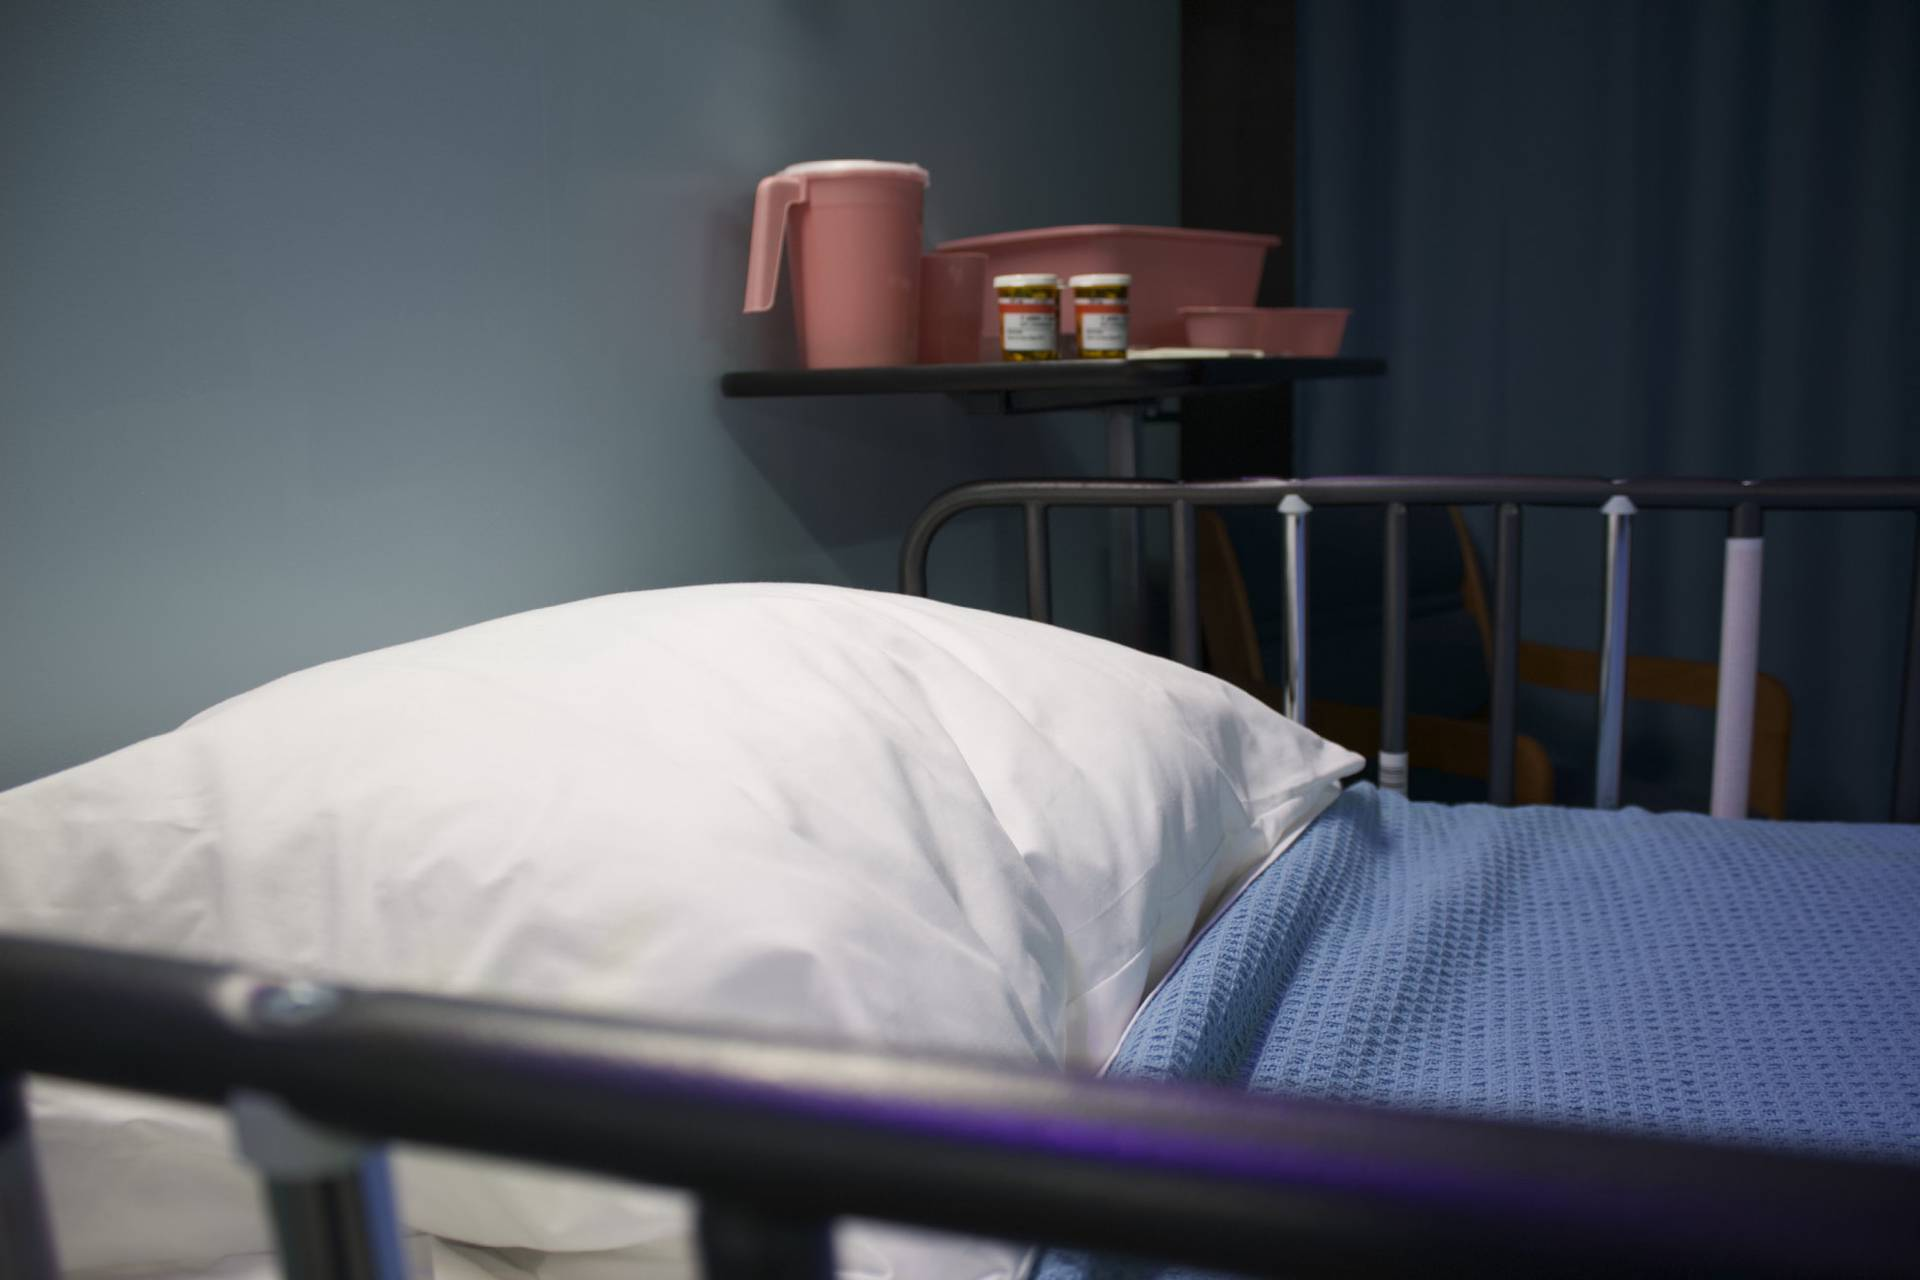 Picture of a hospital bed with a blue blanket on and white pillow, and a shelf that has a jug of water and two boxes of pills. The room is dark and there is a green curtain in the background